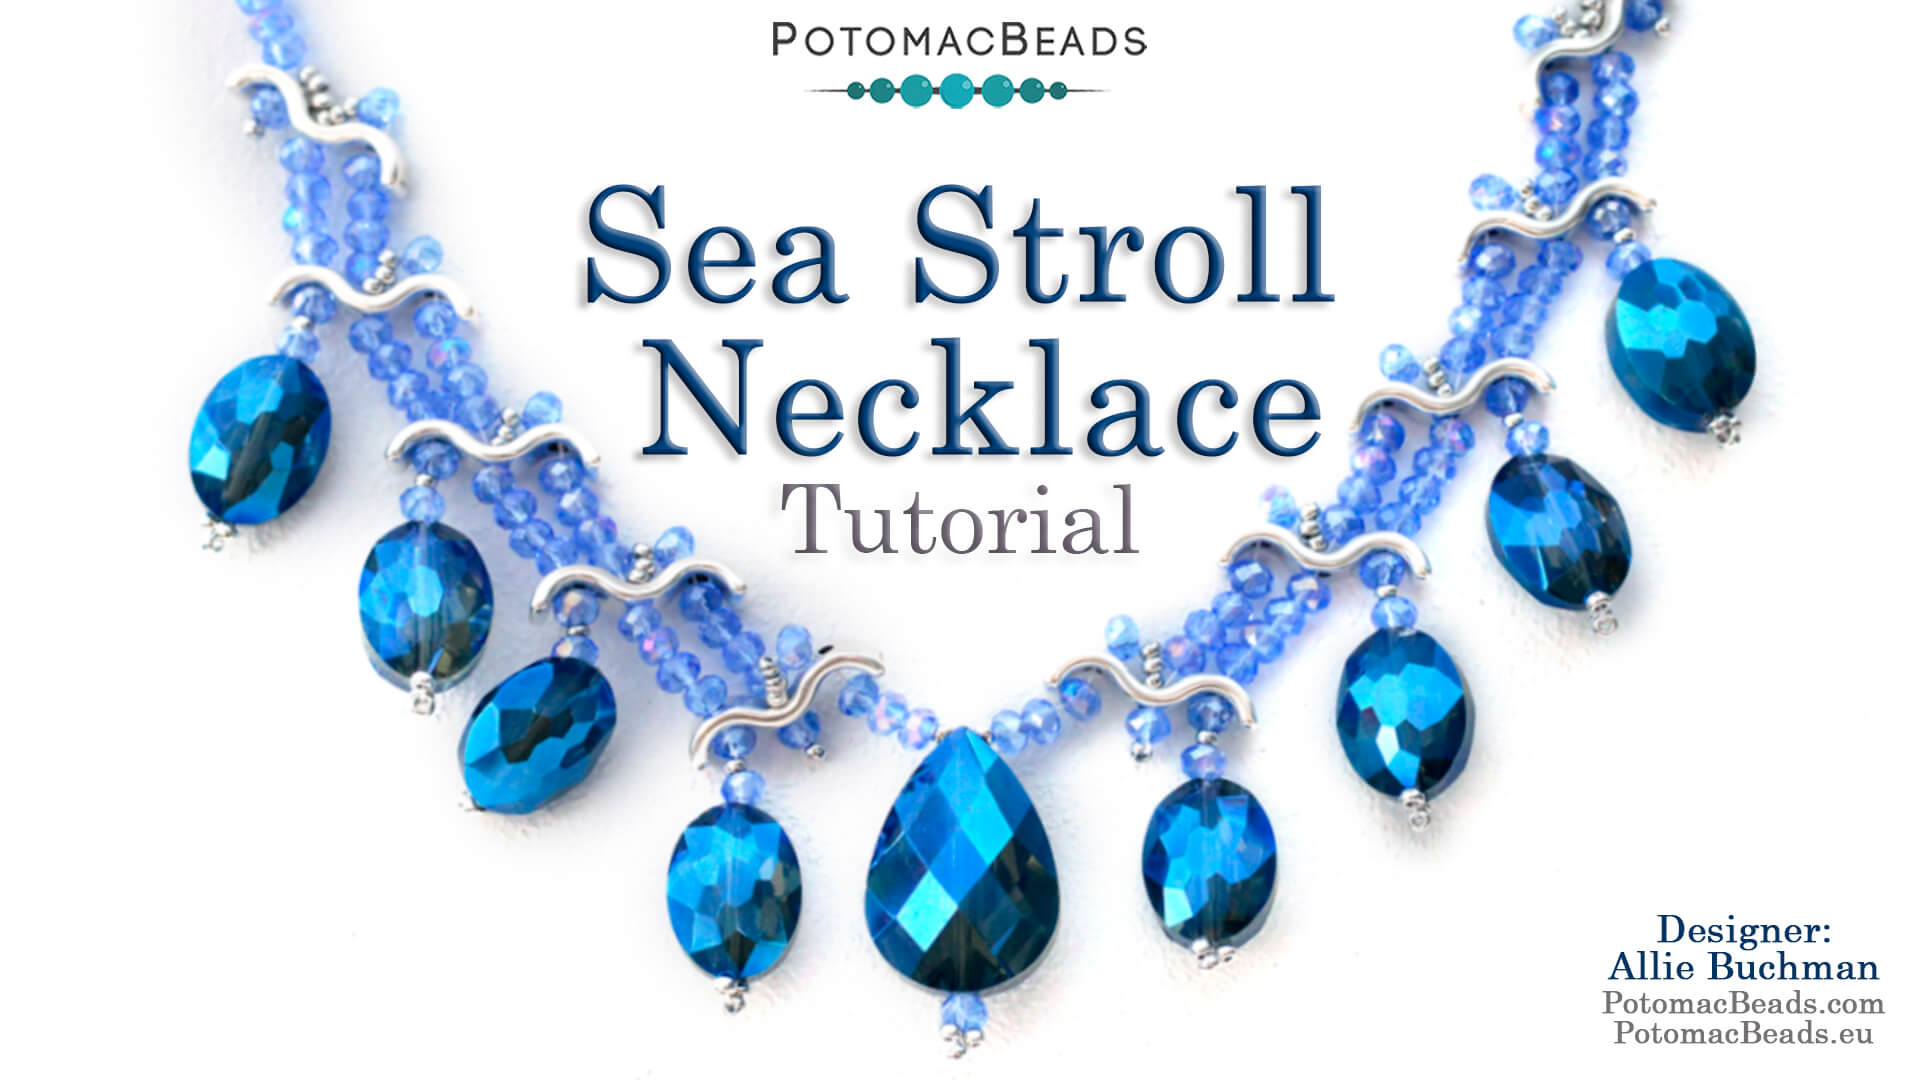 How to Bead Jewelry / Videos Sorted by Beads / Potomax Metal Bead Videos / Sea Stroll Necklace Tutorial